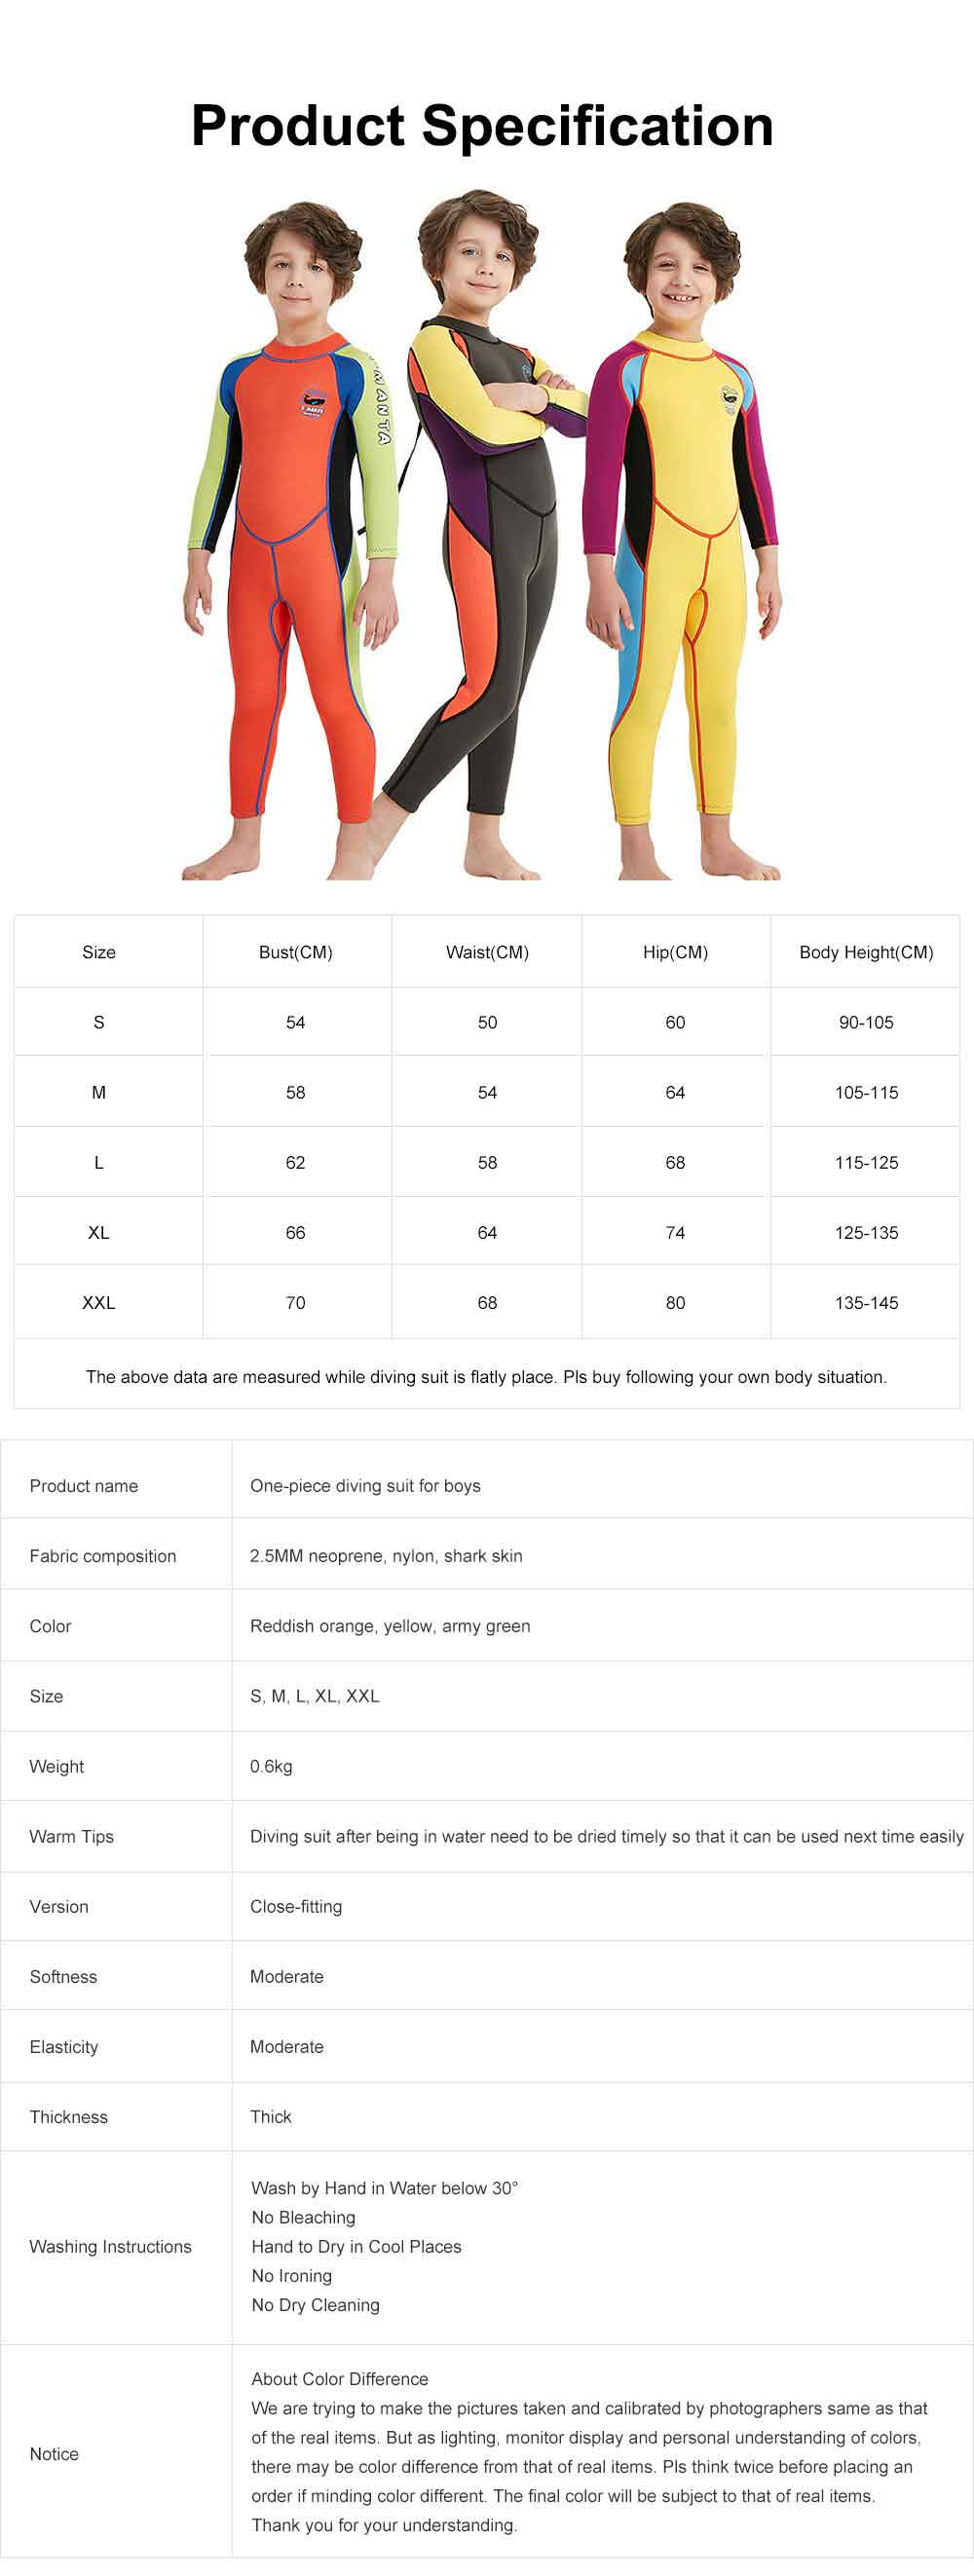 One-piece Boy Diving Suit, Long Sleeve Diving Clothes for Boys, Sunblock Swimsuits Snorkeling 2019 Spring Surfing Swimwear 9